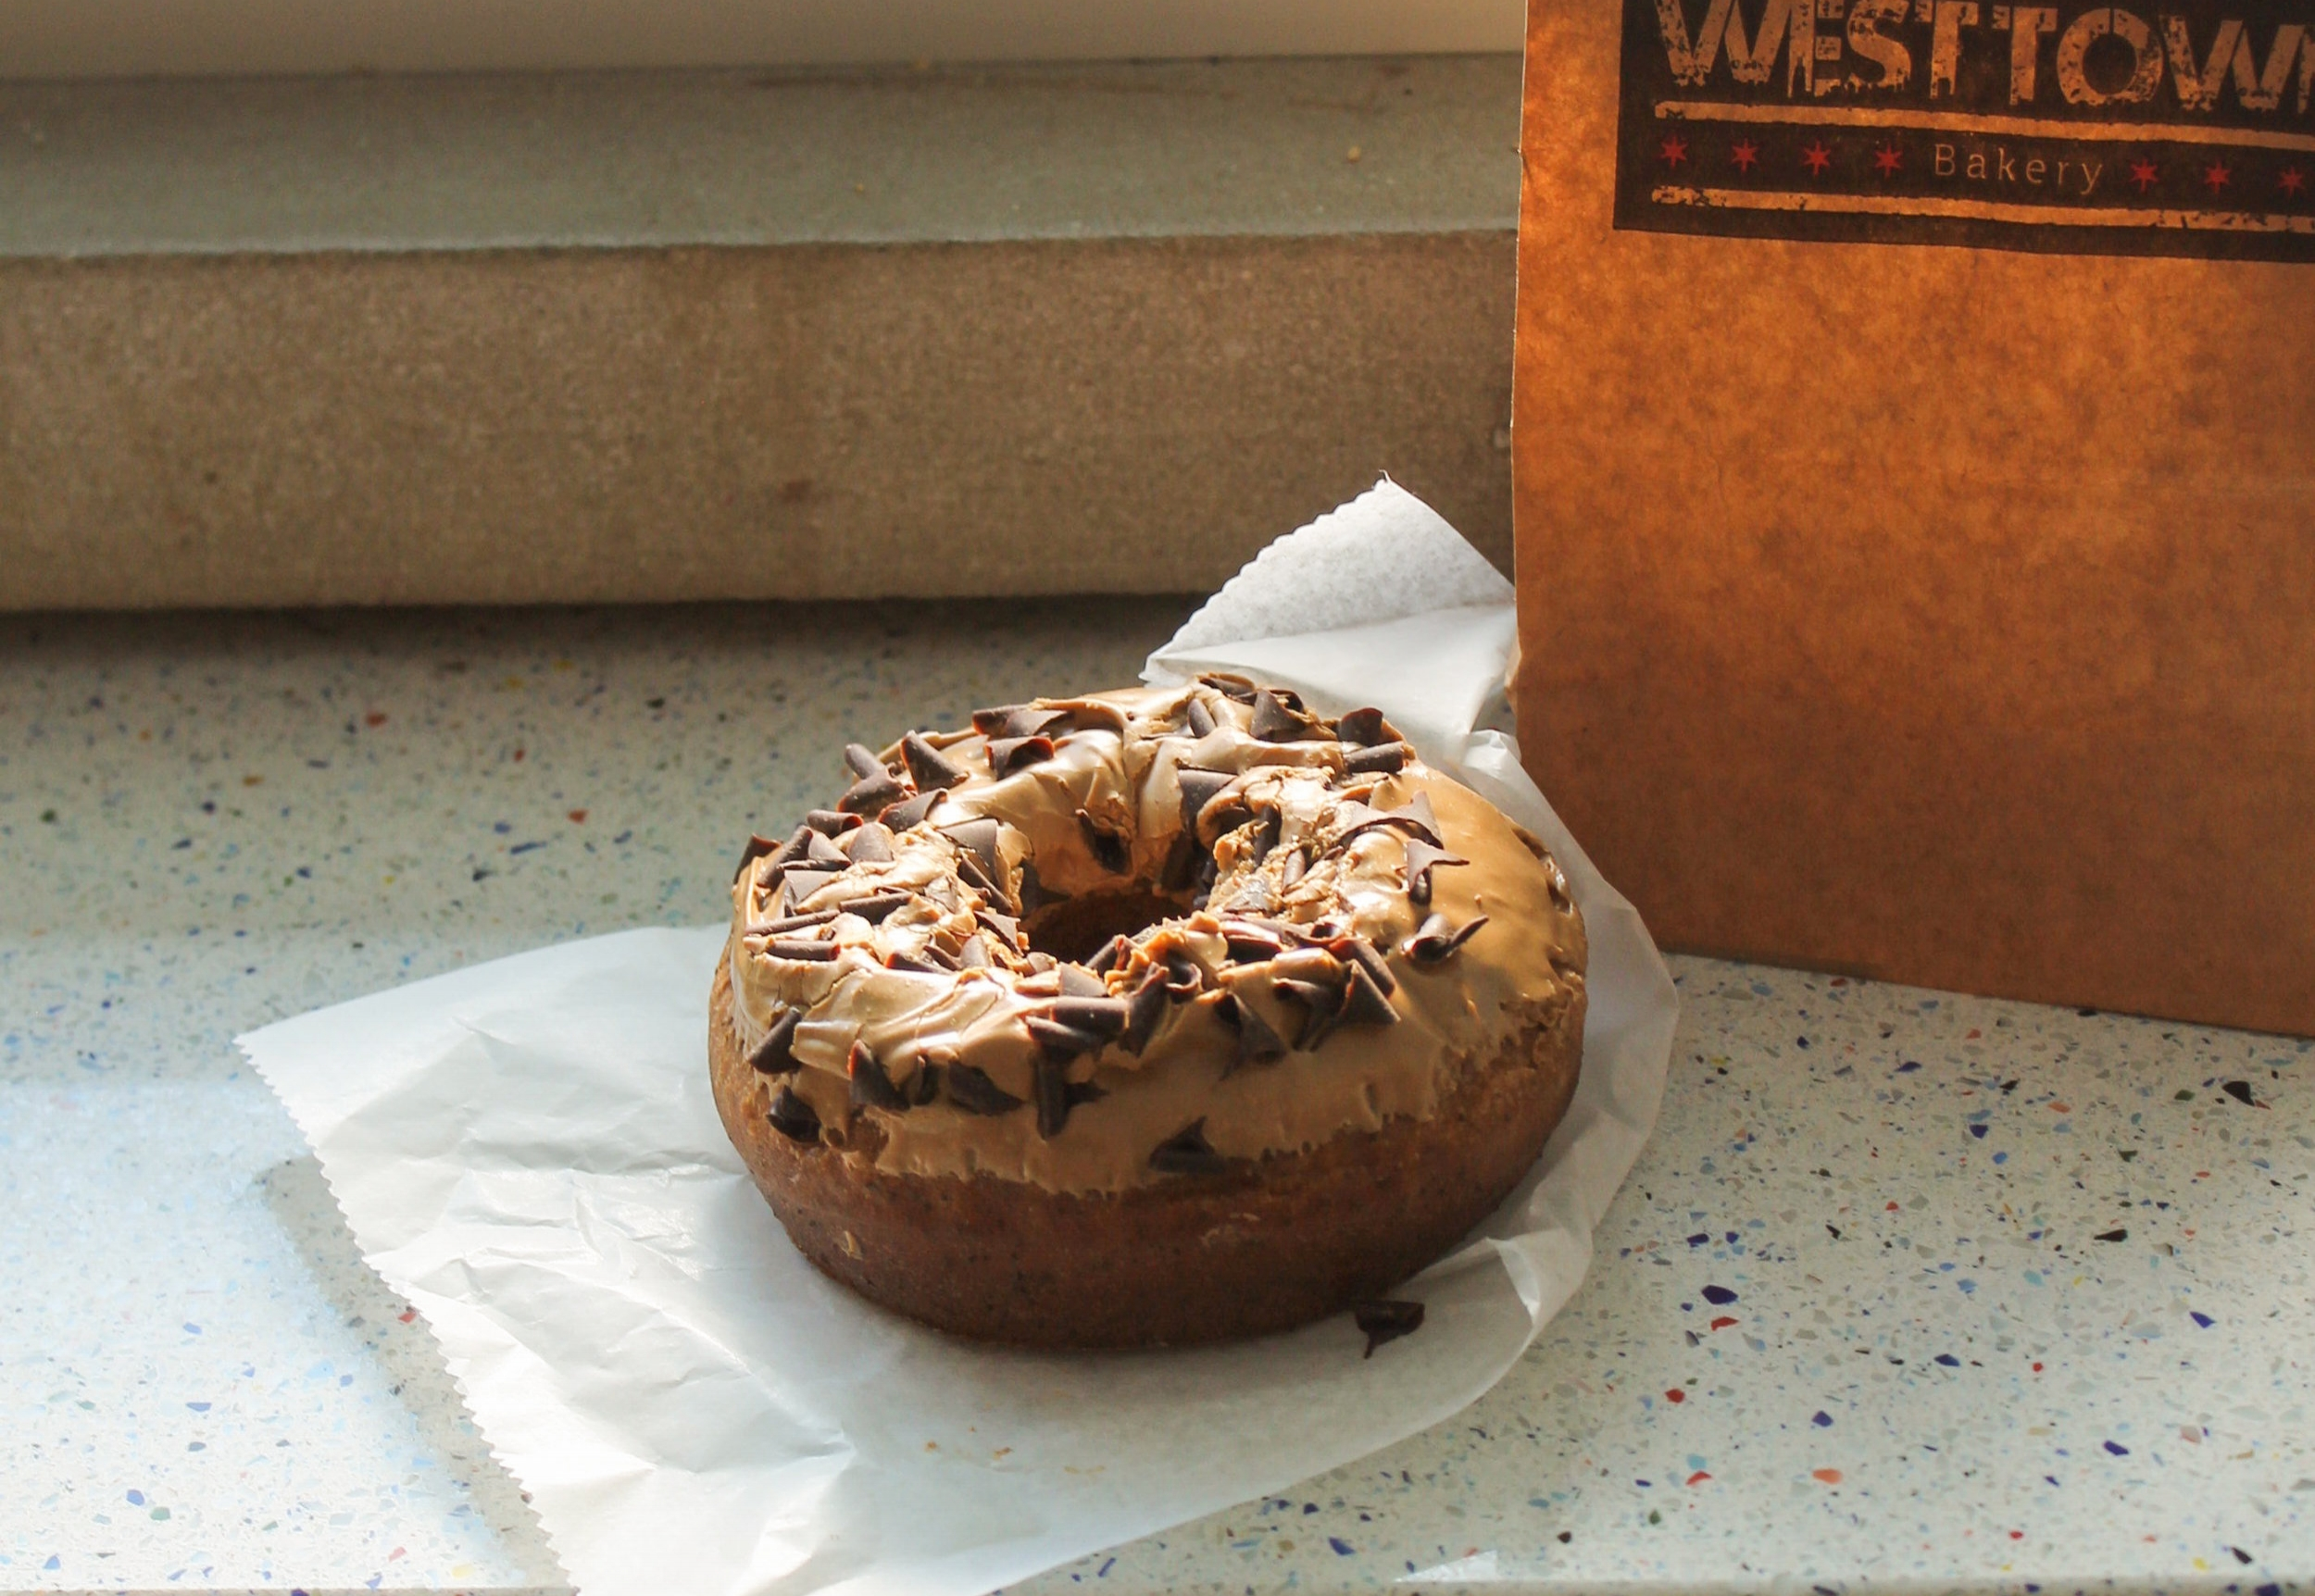 West town bakery 1.jpg